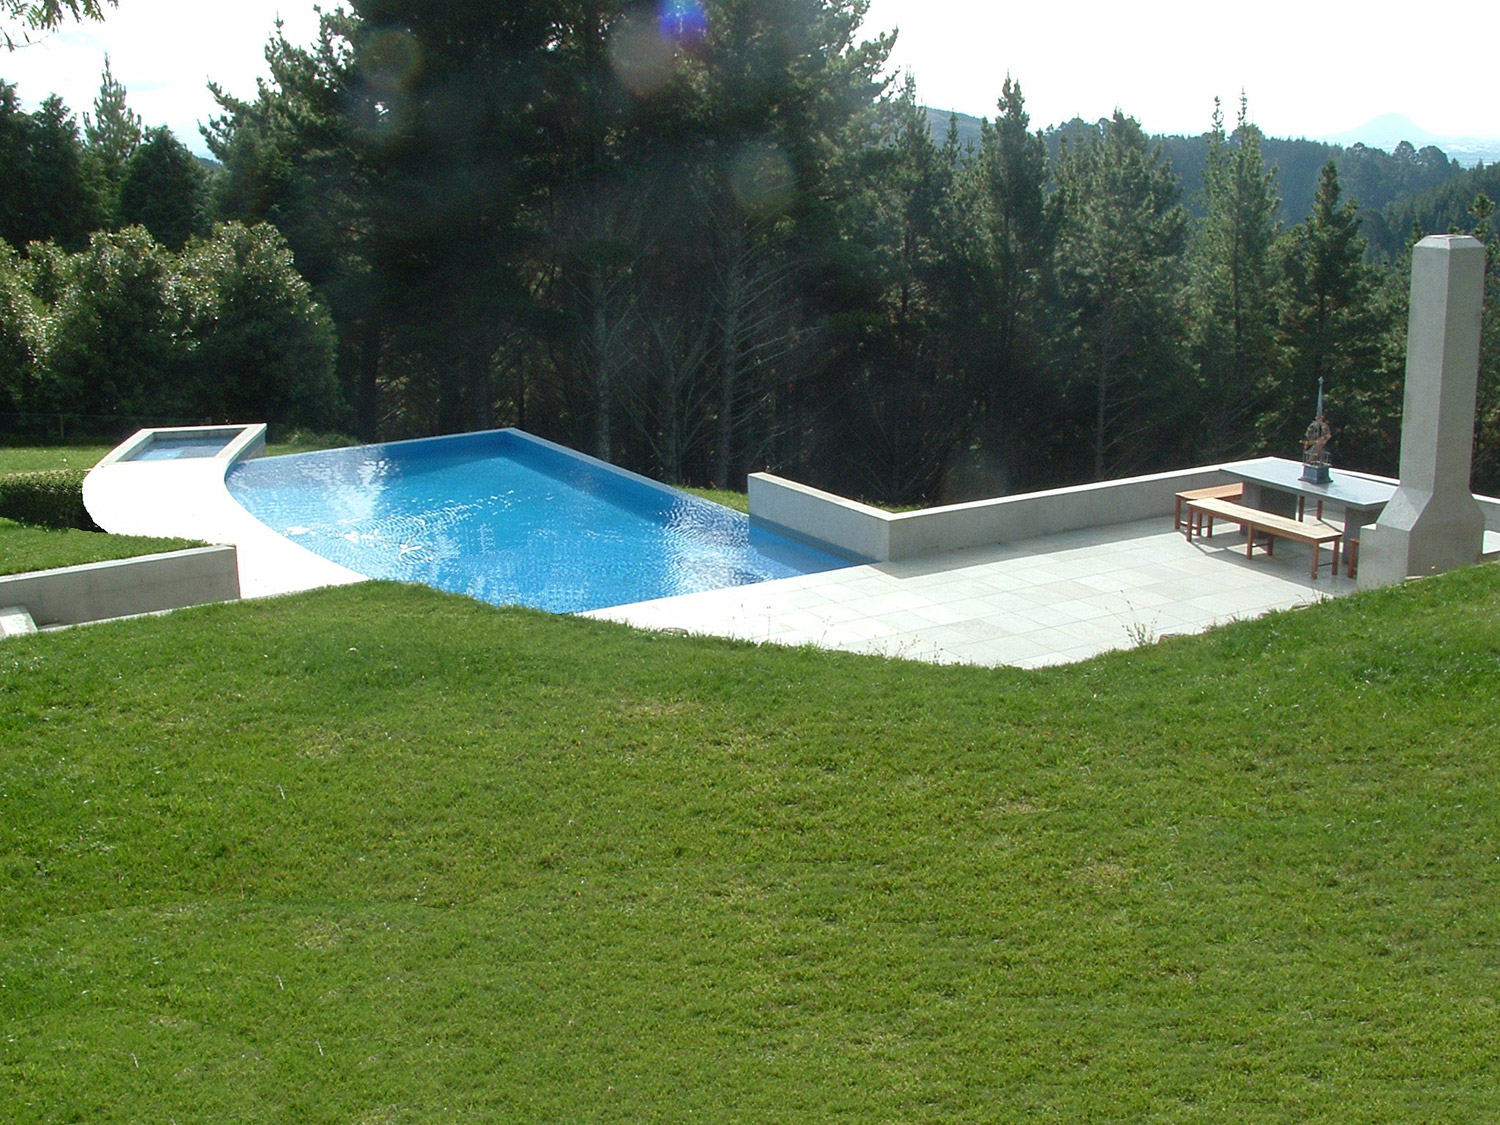 Wet edge swimming pool spa design on sloping site for Pool design company elwira kowalska